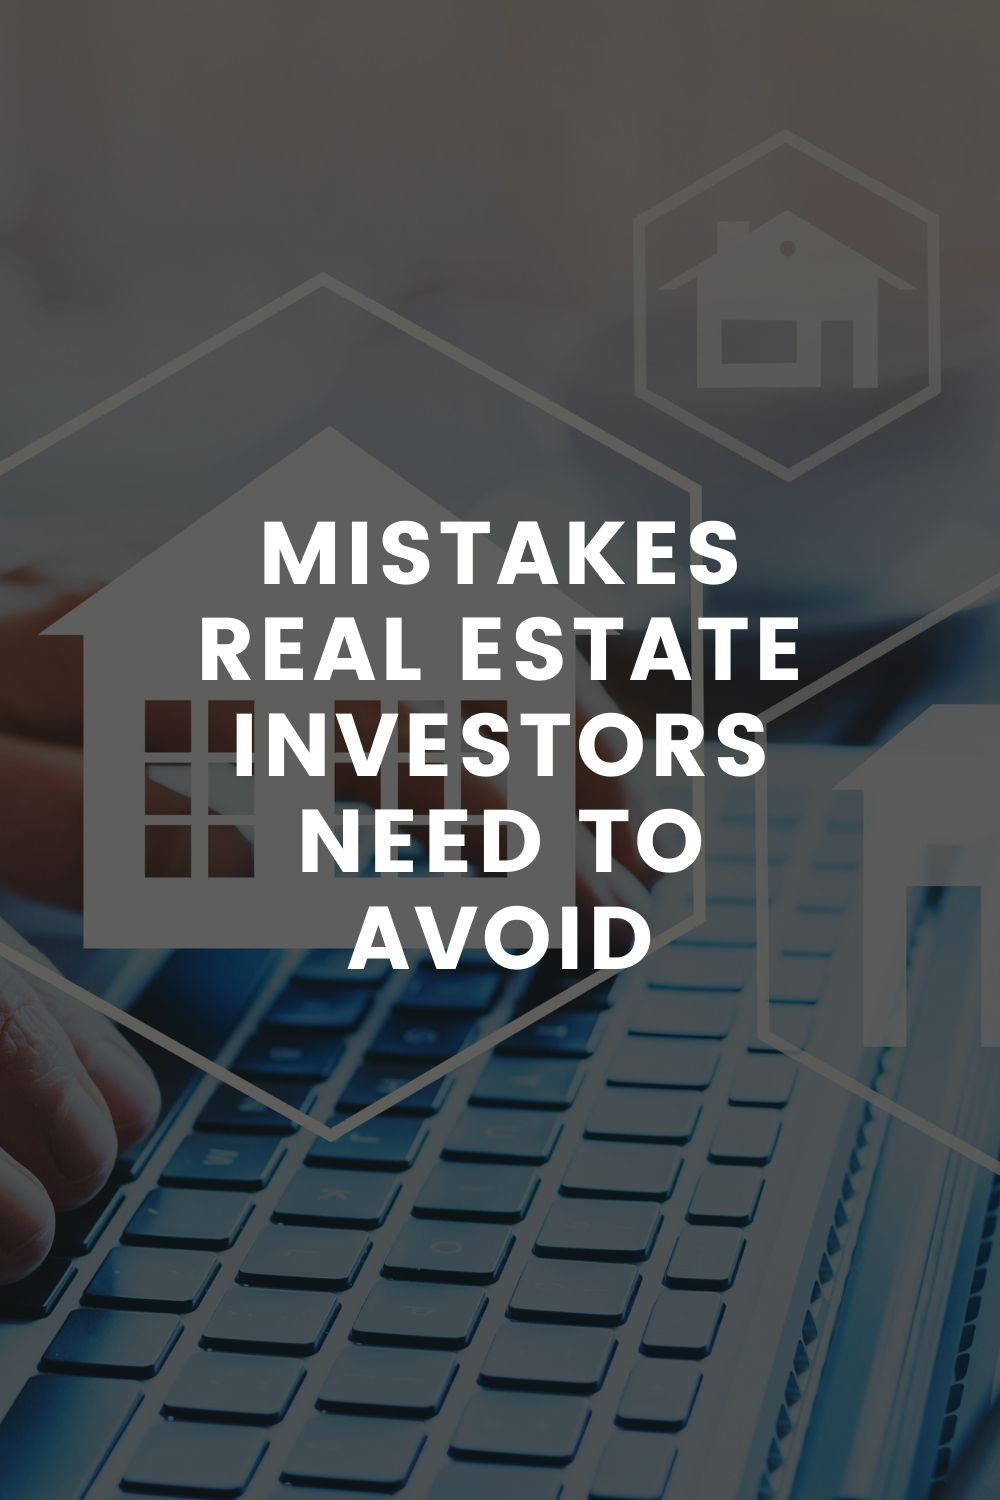 Mistakes Real Estate Investors Need to Avoid